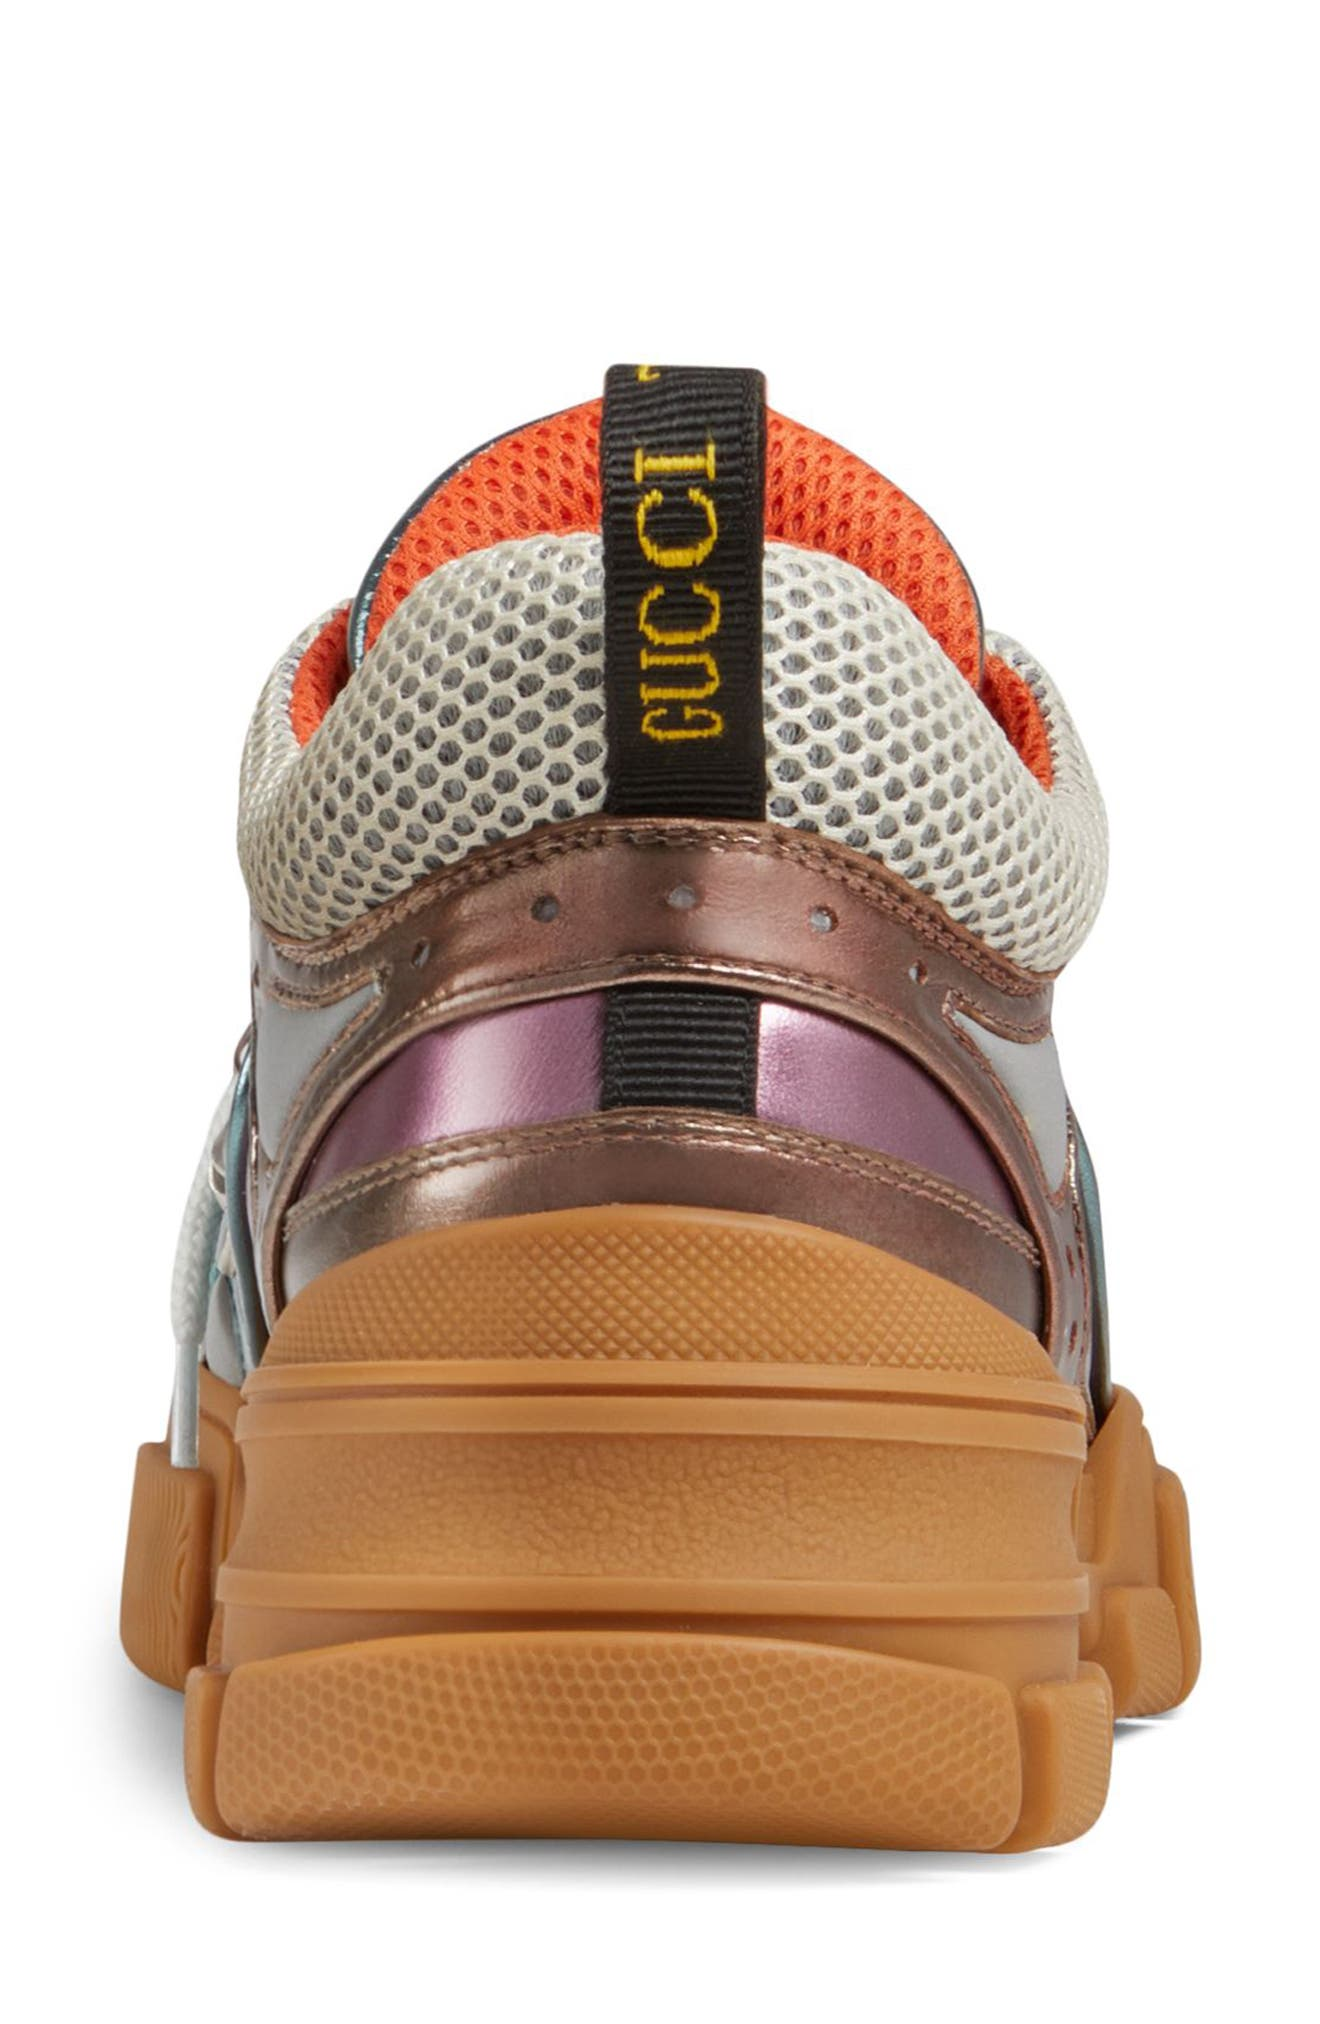 GUCCI, Flashtrek Lace-Up Sneaker, Alternate thumbnail 2, color, BROWN/ BLUE/ PINK